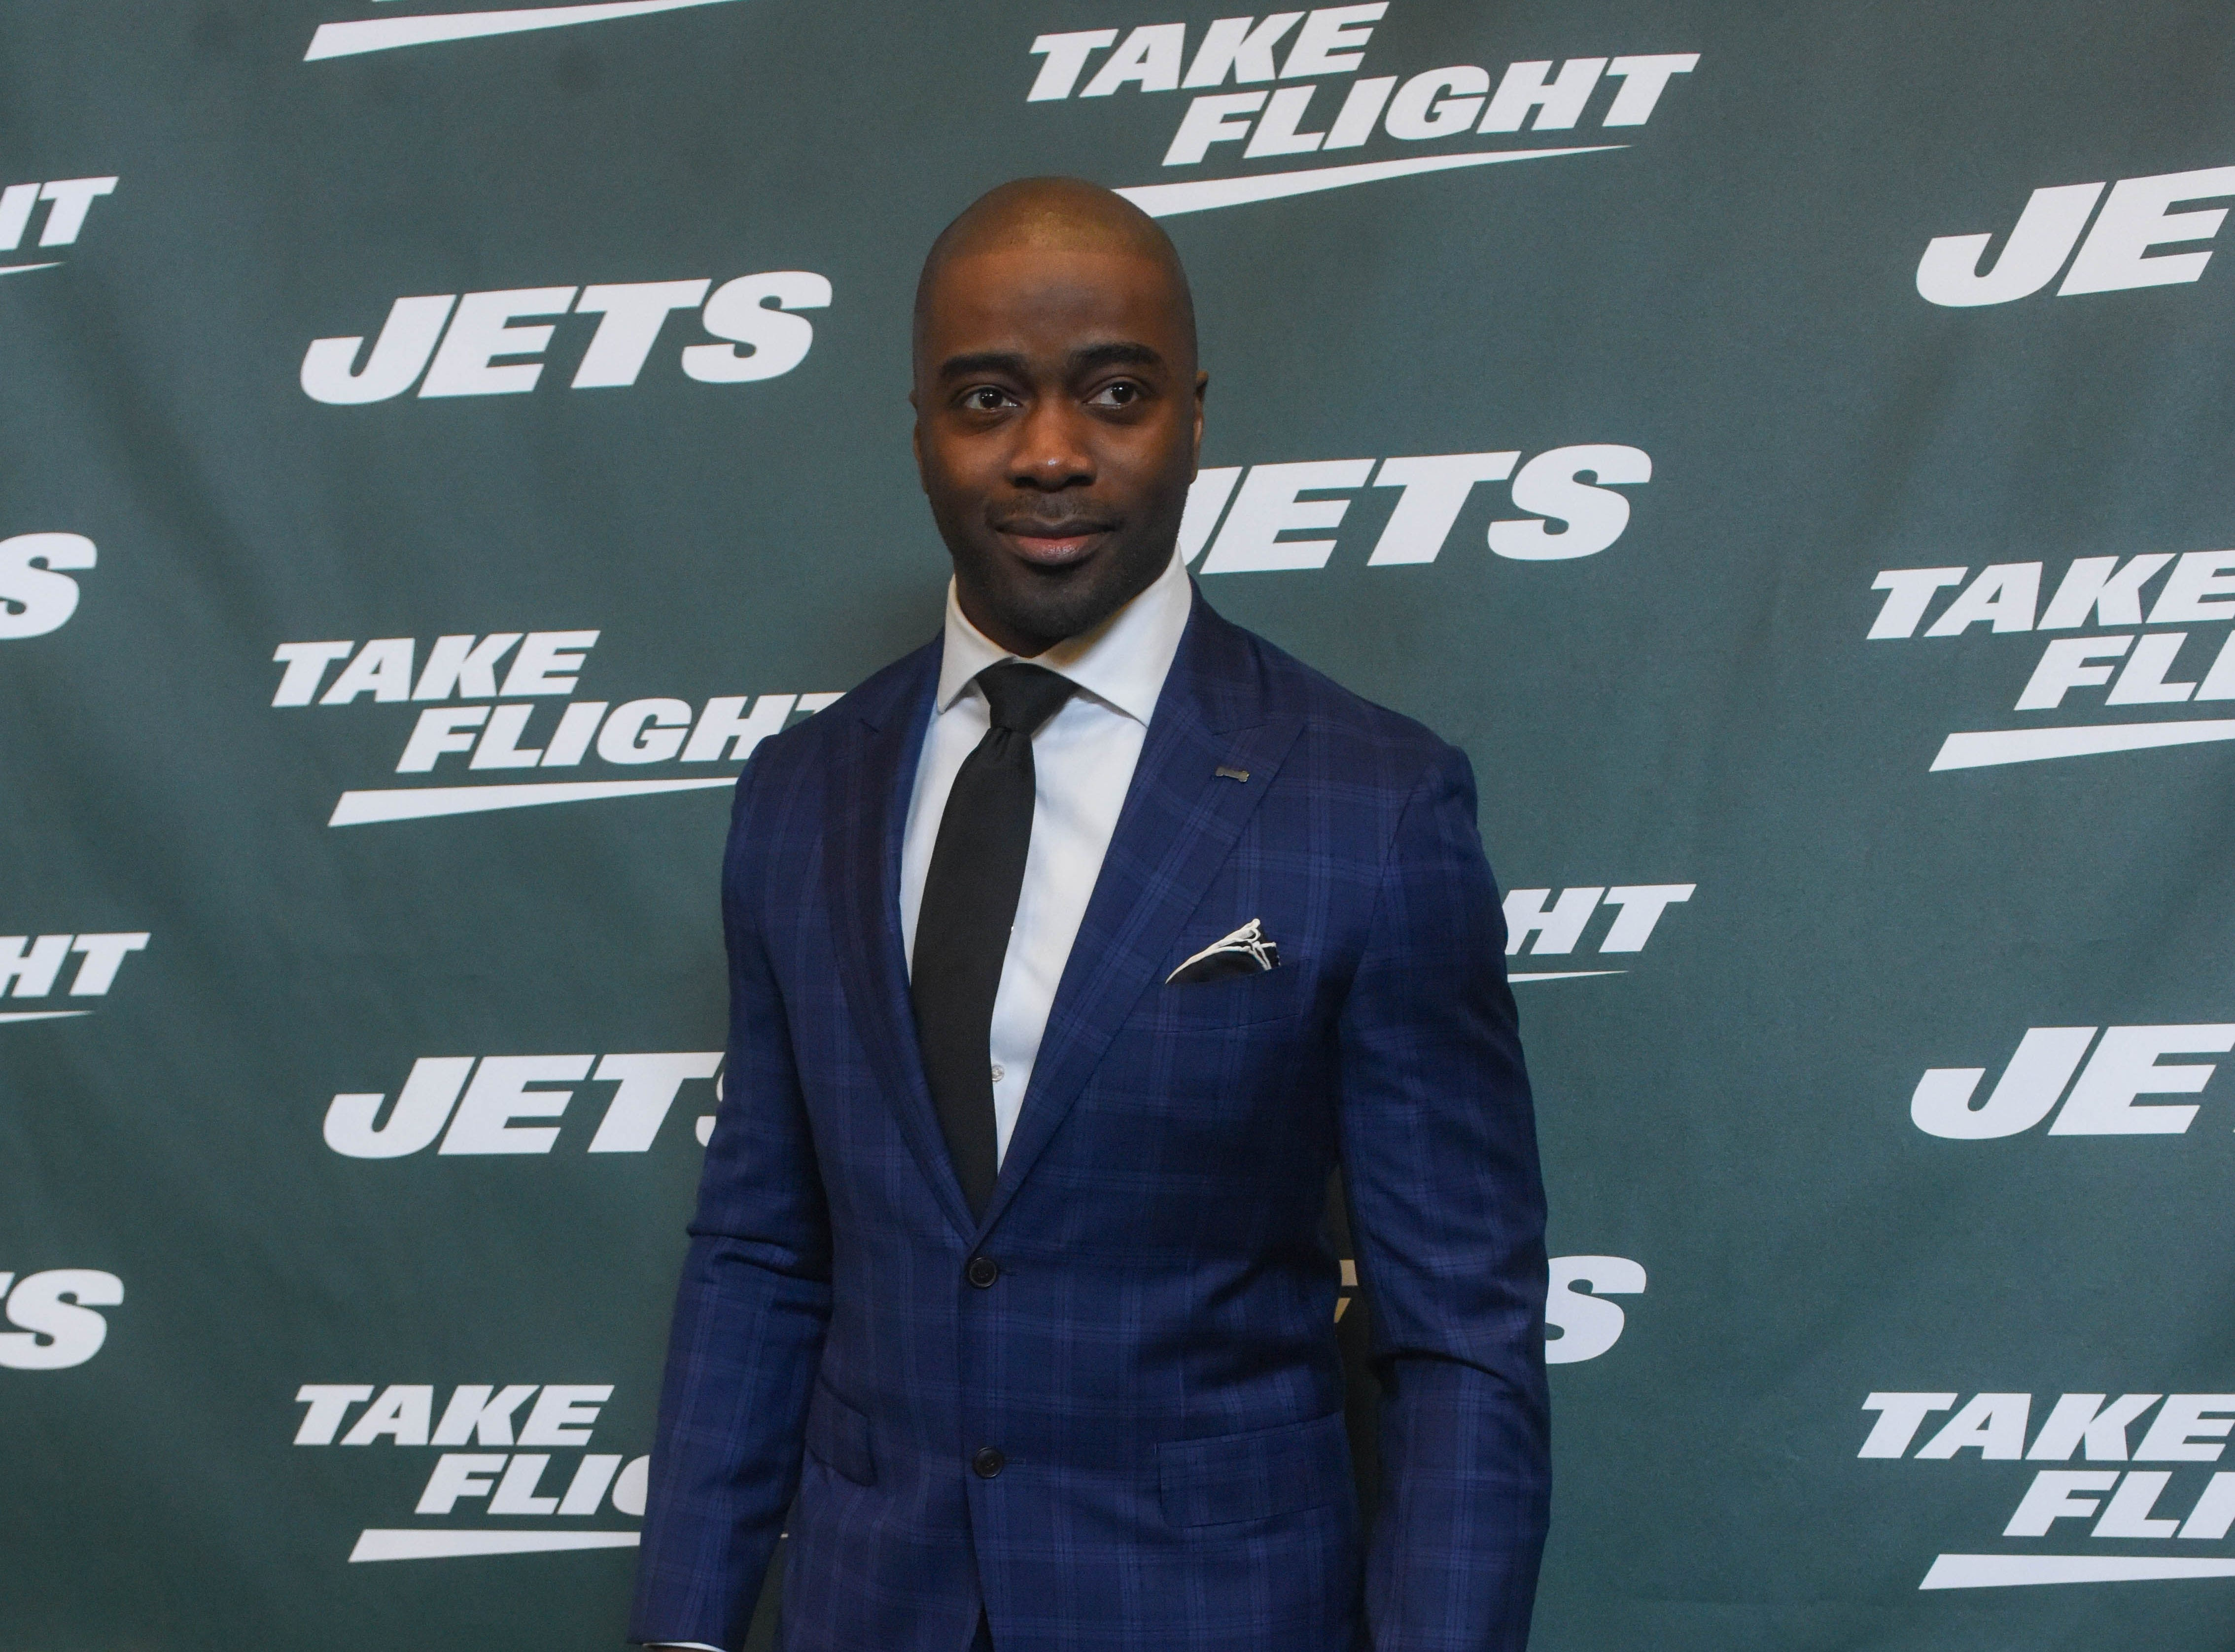 Curtis Martin (NY Jets). The NY Jets unveiled their new football uniforms with an event hosted by JB Smoove at Gotham Hall in New York. 04/05/2019